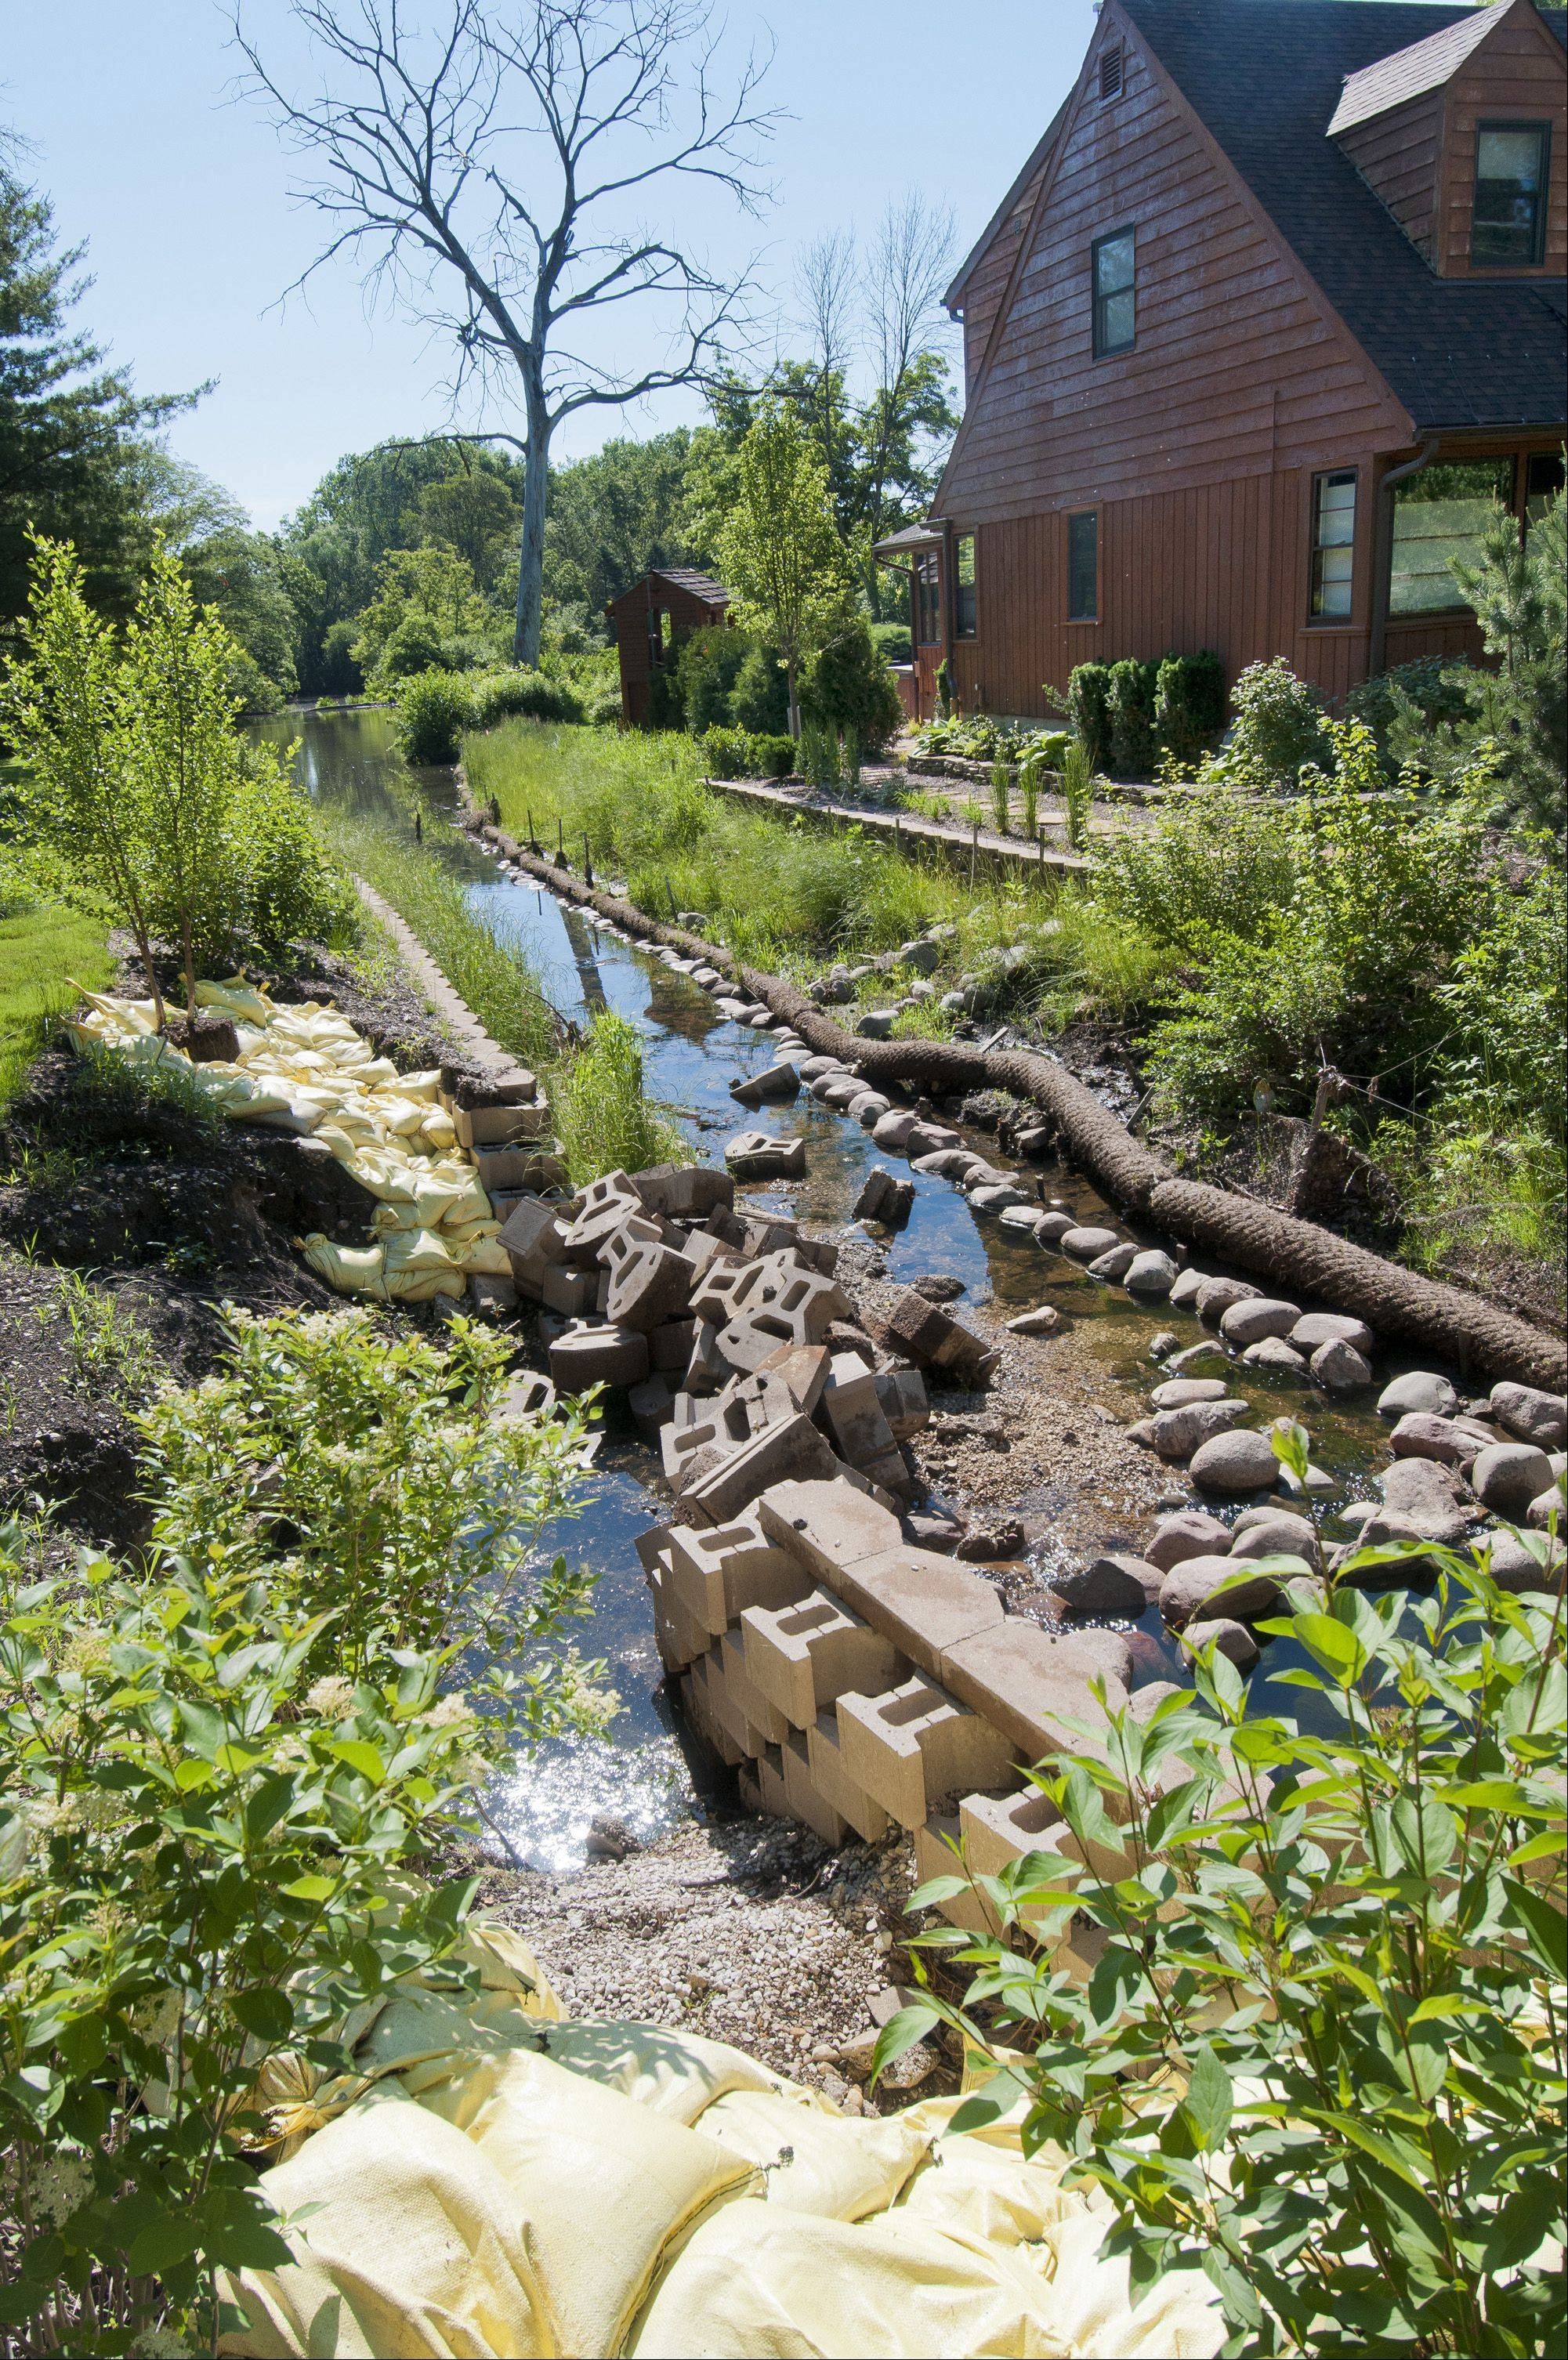 Part of the retaining wall on a channel that connects Glen Ellyn�s stormsewer system with Perry�s Pond is now a pile of rubble after April storms damaged stabilization improvements that had been made.